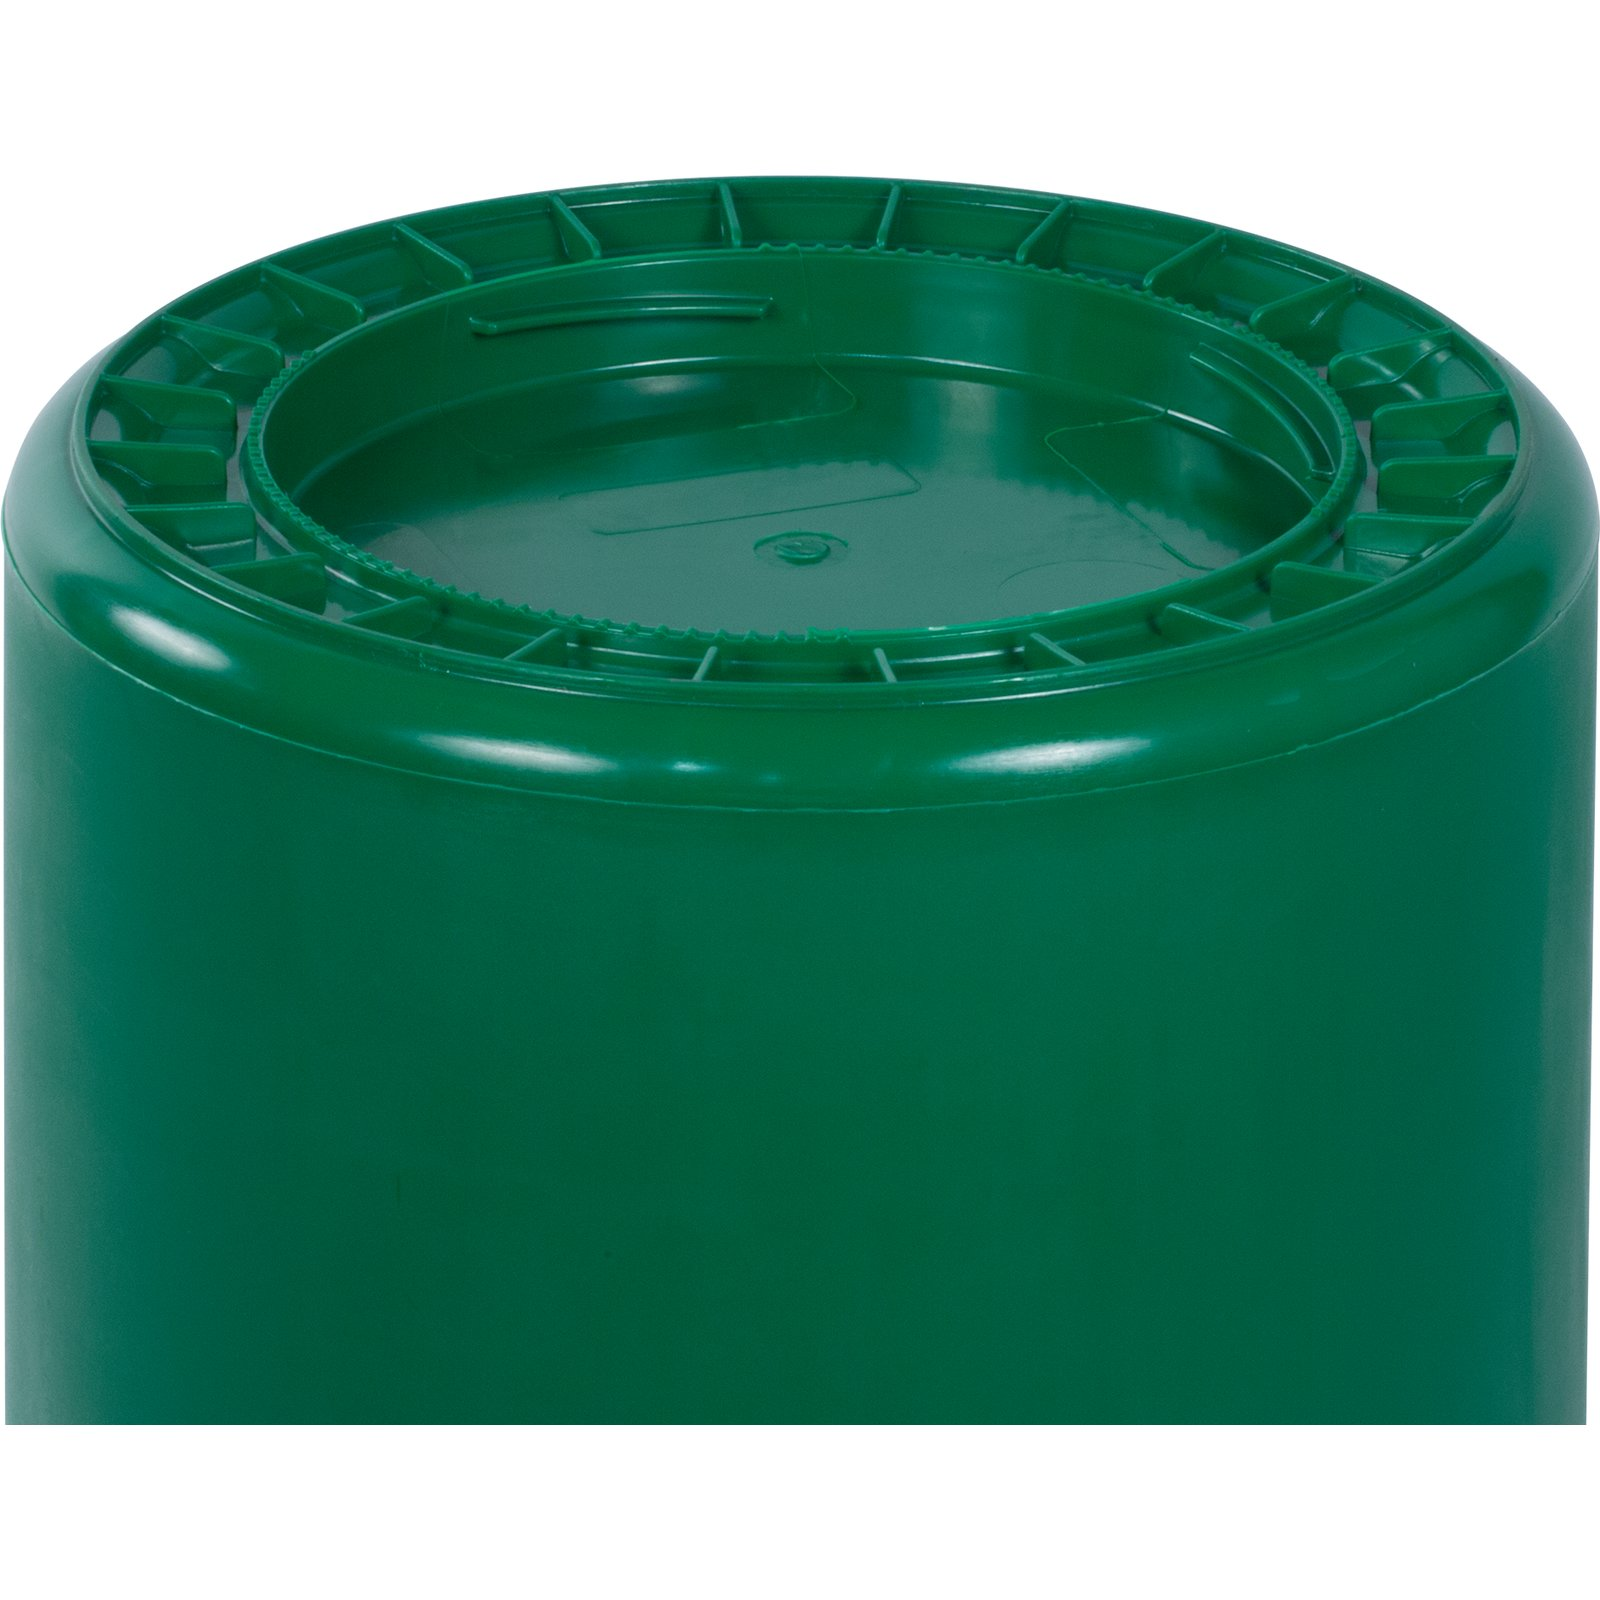 34102009 bronco round waste bin food container 20 gallon green carlisle foodservice products - Garden waste containers ...